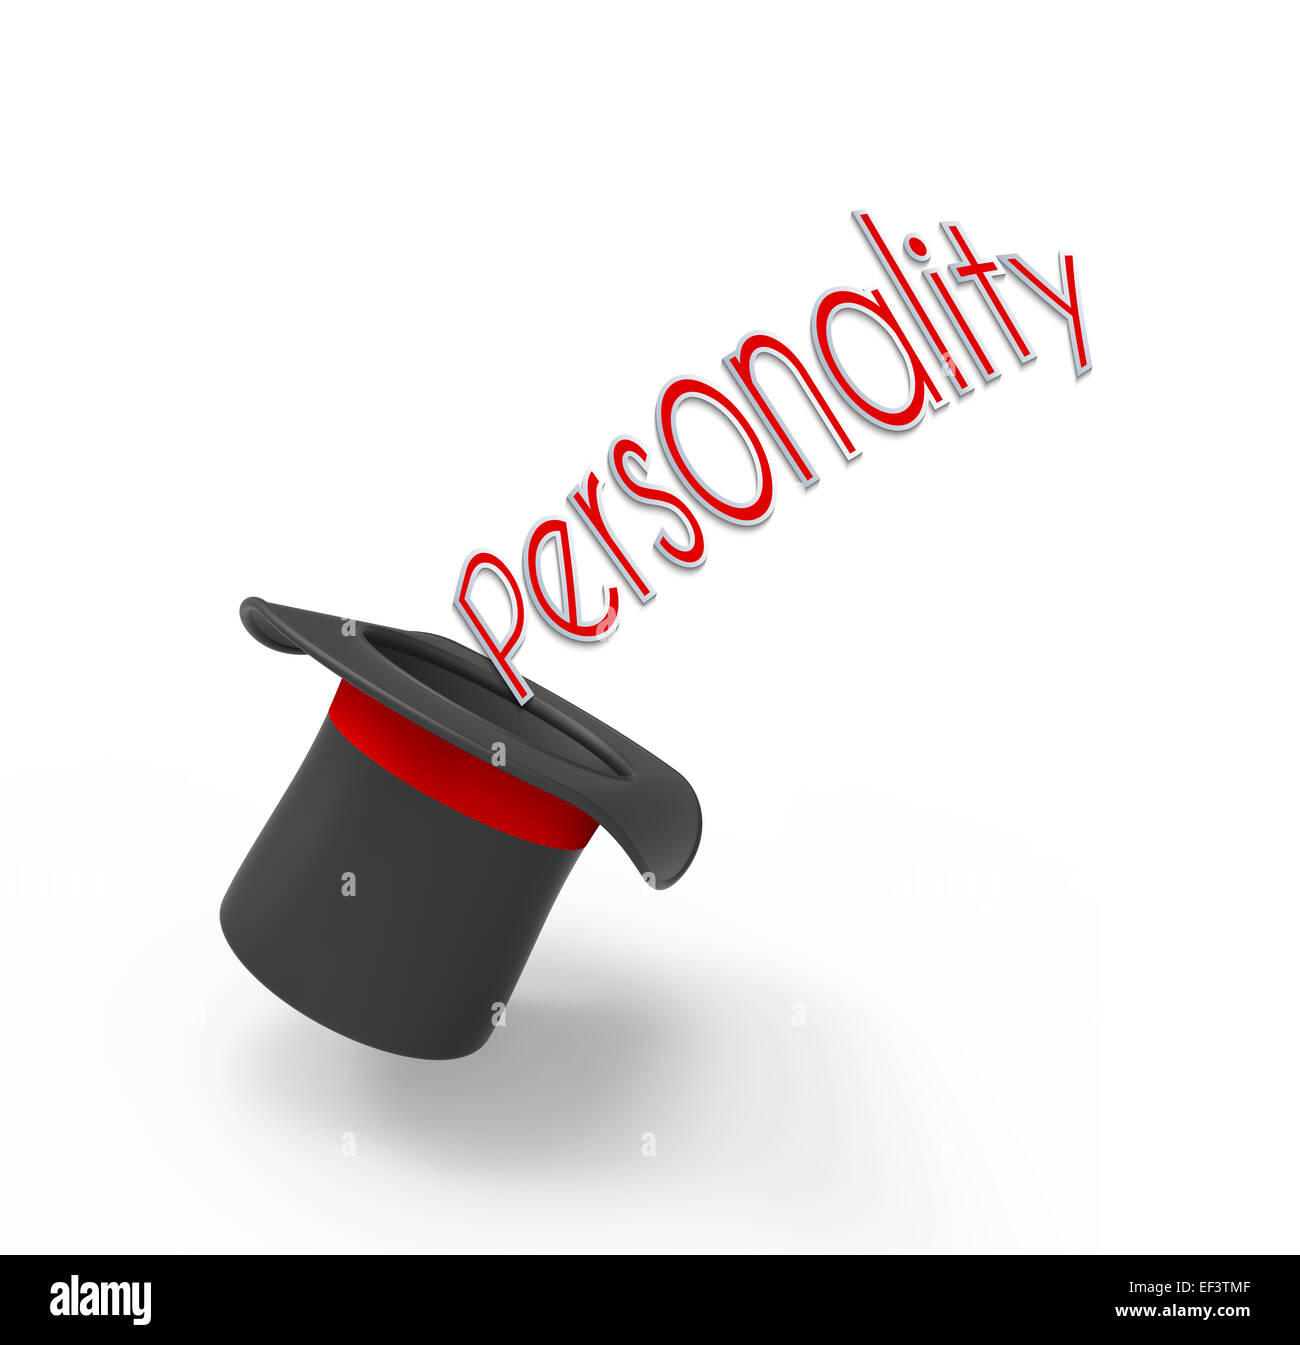 Illusionist's top hat on white background with pop-up caption 'Personality'. Concept for secrets hidden - Stock Image